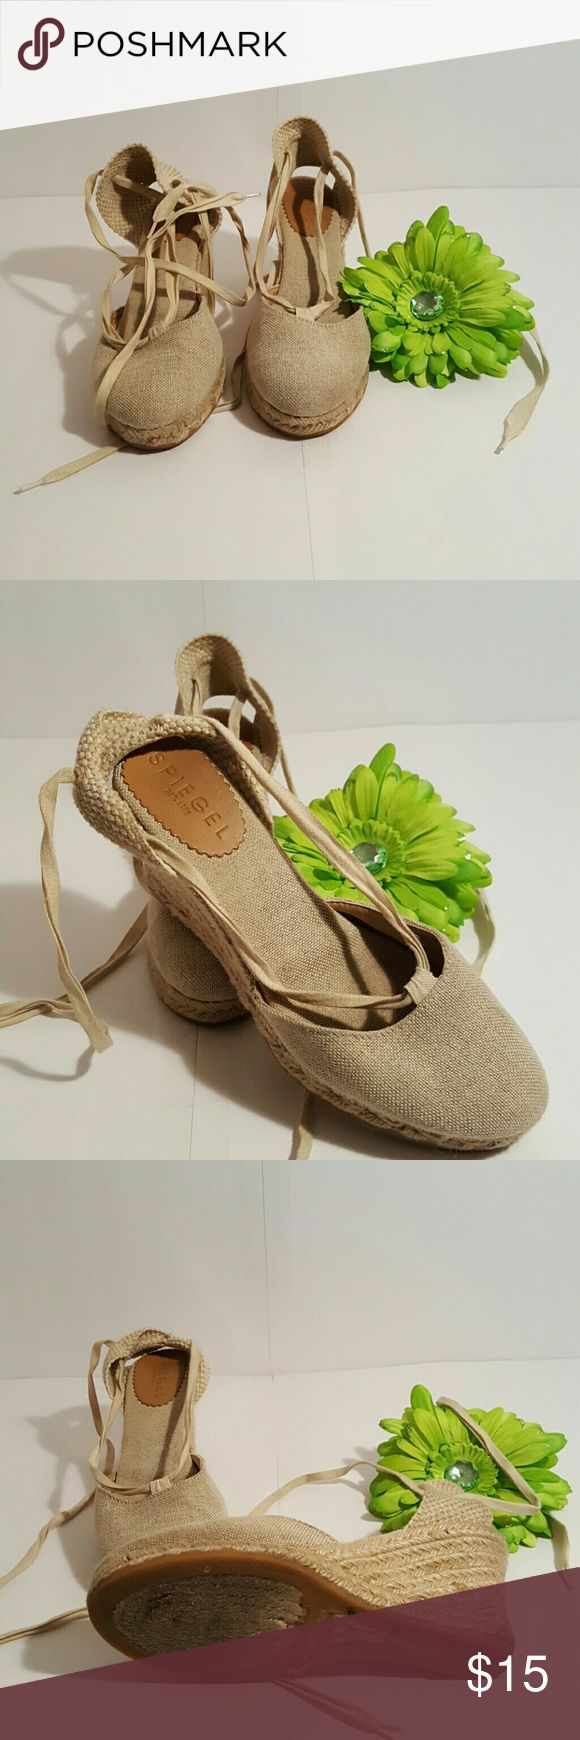 Spiegel Espadrilles  shoes Beige Espadrilles, shoes by spiegel, great condition, fun shoe to wea with capri, skirts and dresses. Spiegel Shoes Espadrilles